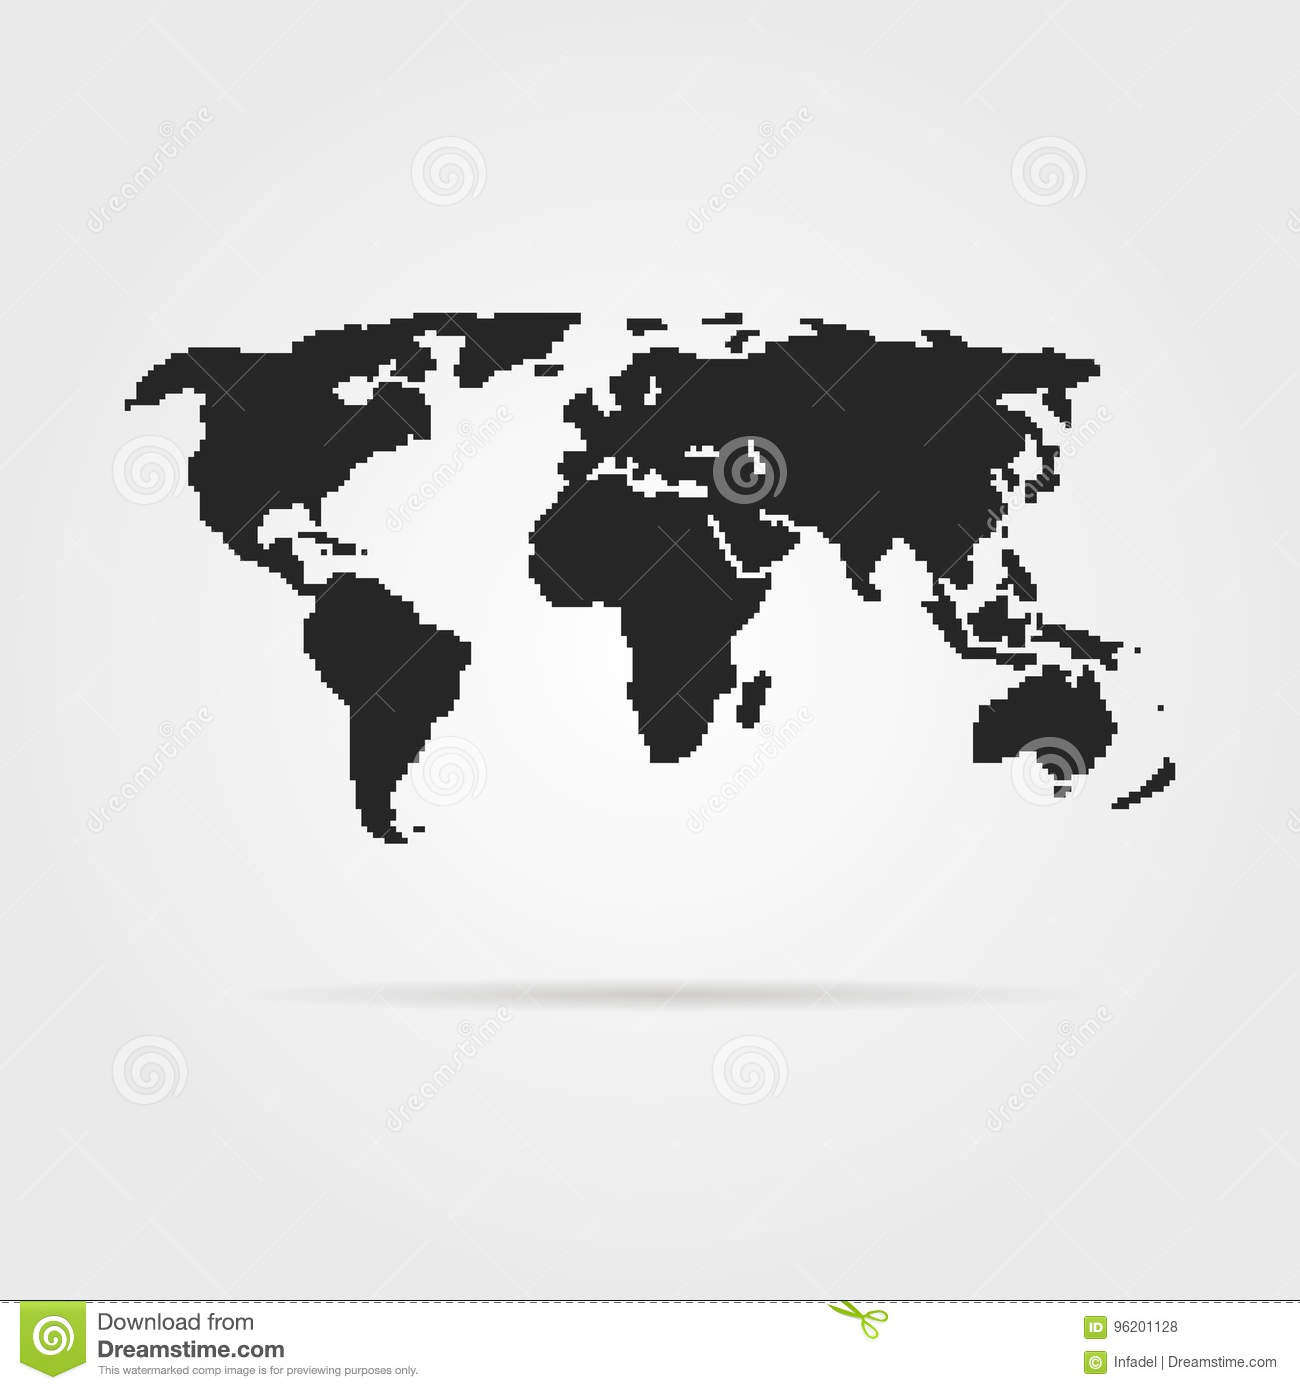 Black pixel art world map with shadow stock vector illustration of black pixel art world map with shadow gumiabroncs Image collections